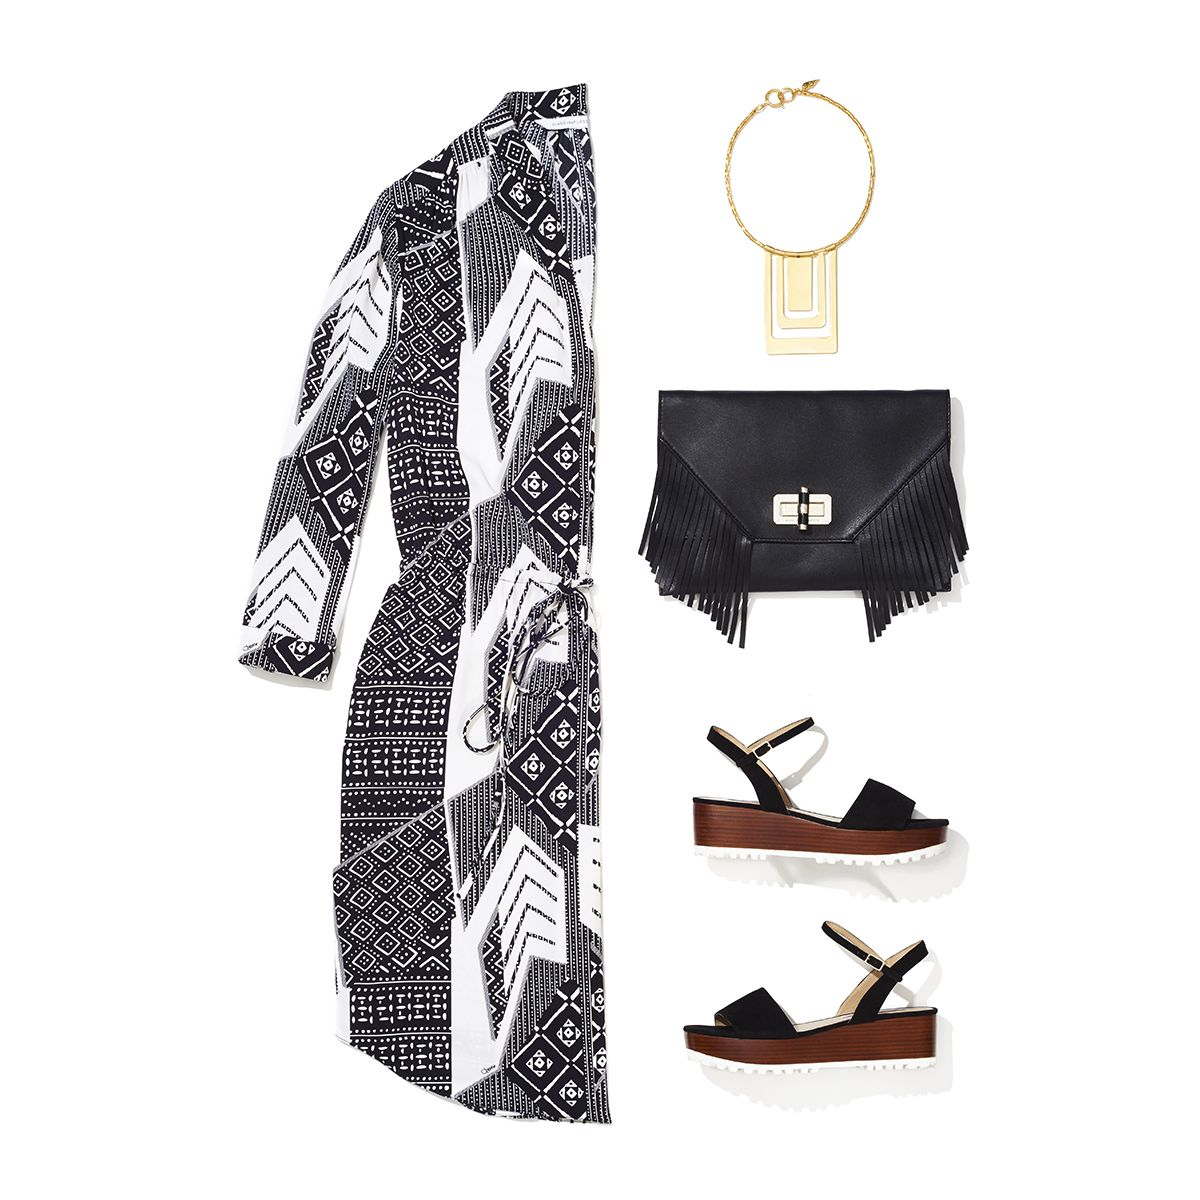 """No look is complete without a bit of """"punctuation"""" as Diane likes to call it! From """"flatforms"""" to fringe, see how we accessorize the Freya dress on the blog: http://on.dvf.com/1TAxkbD"""